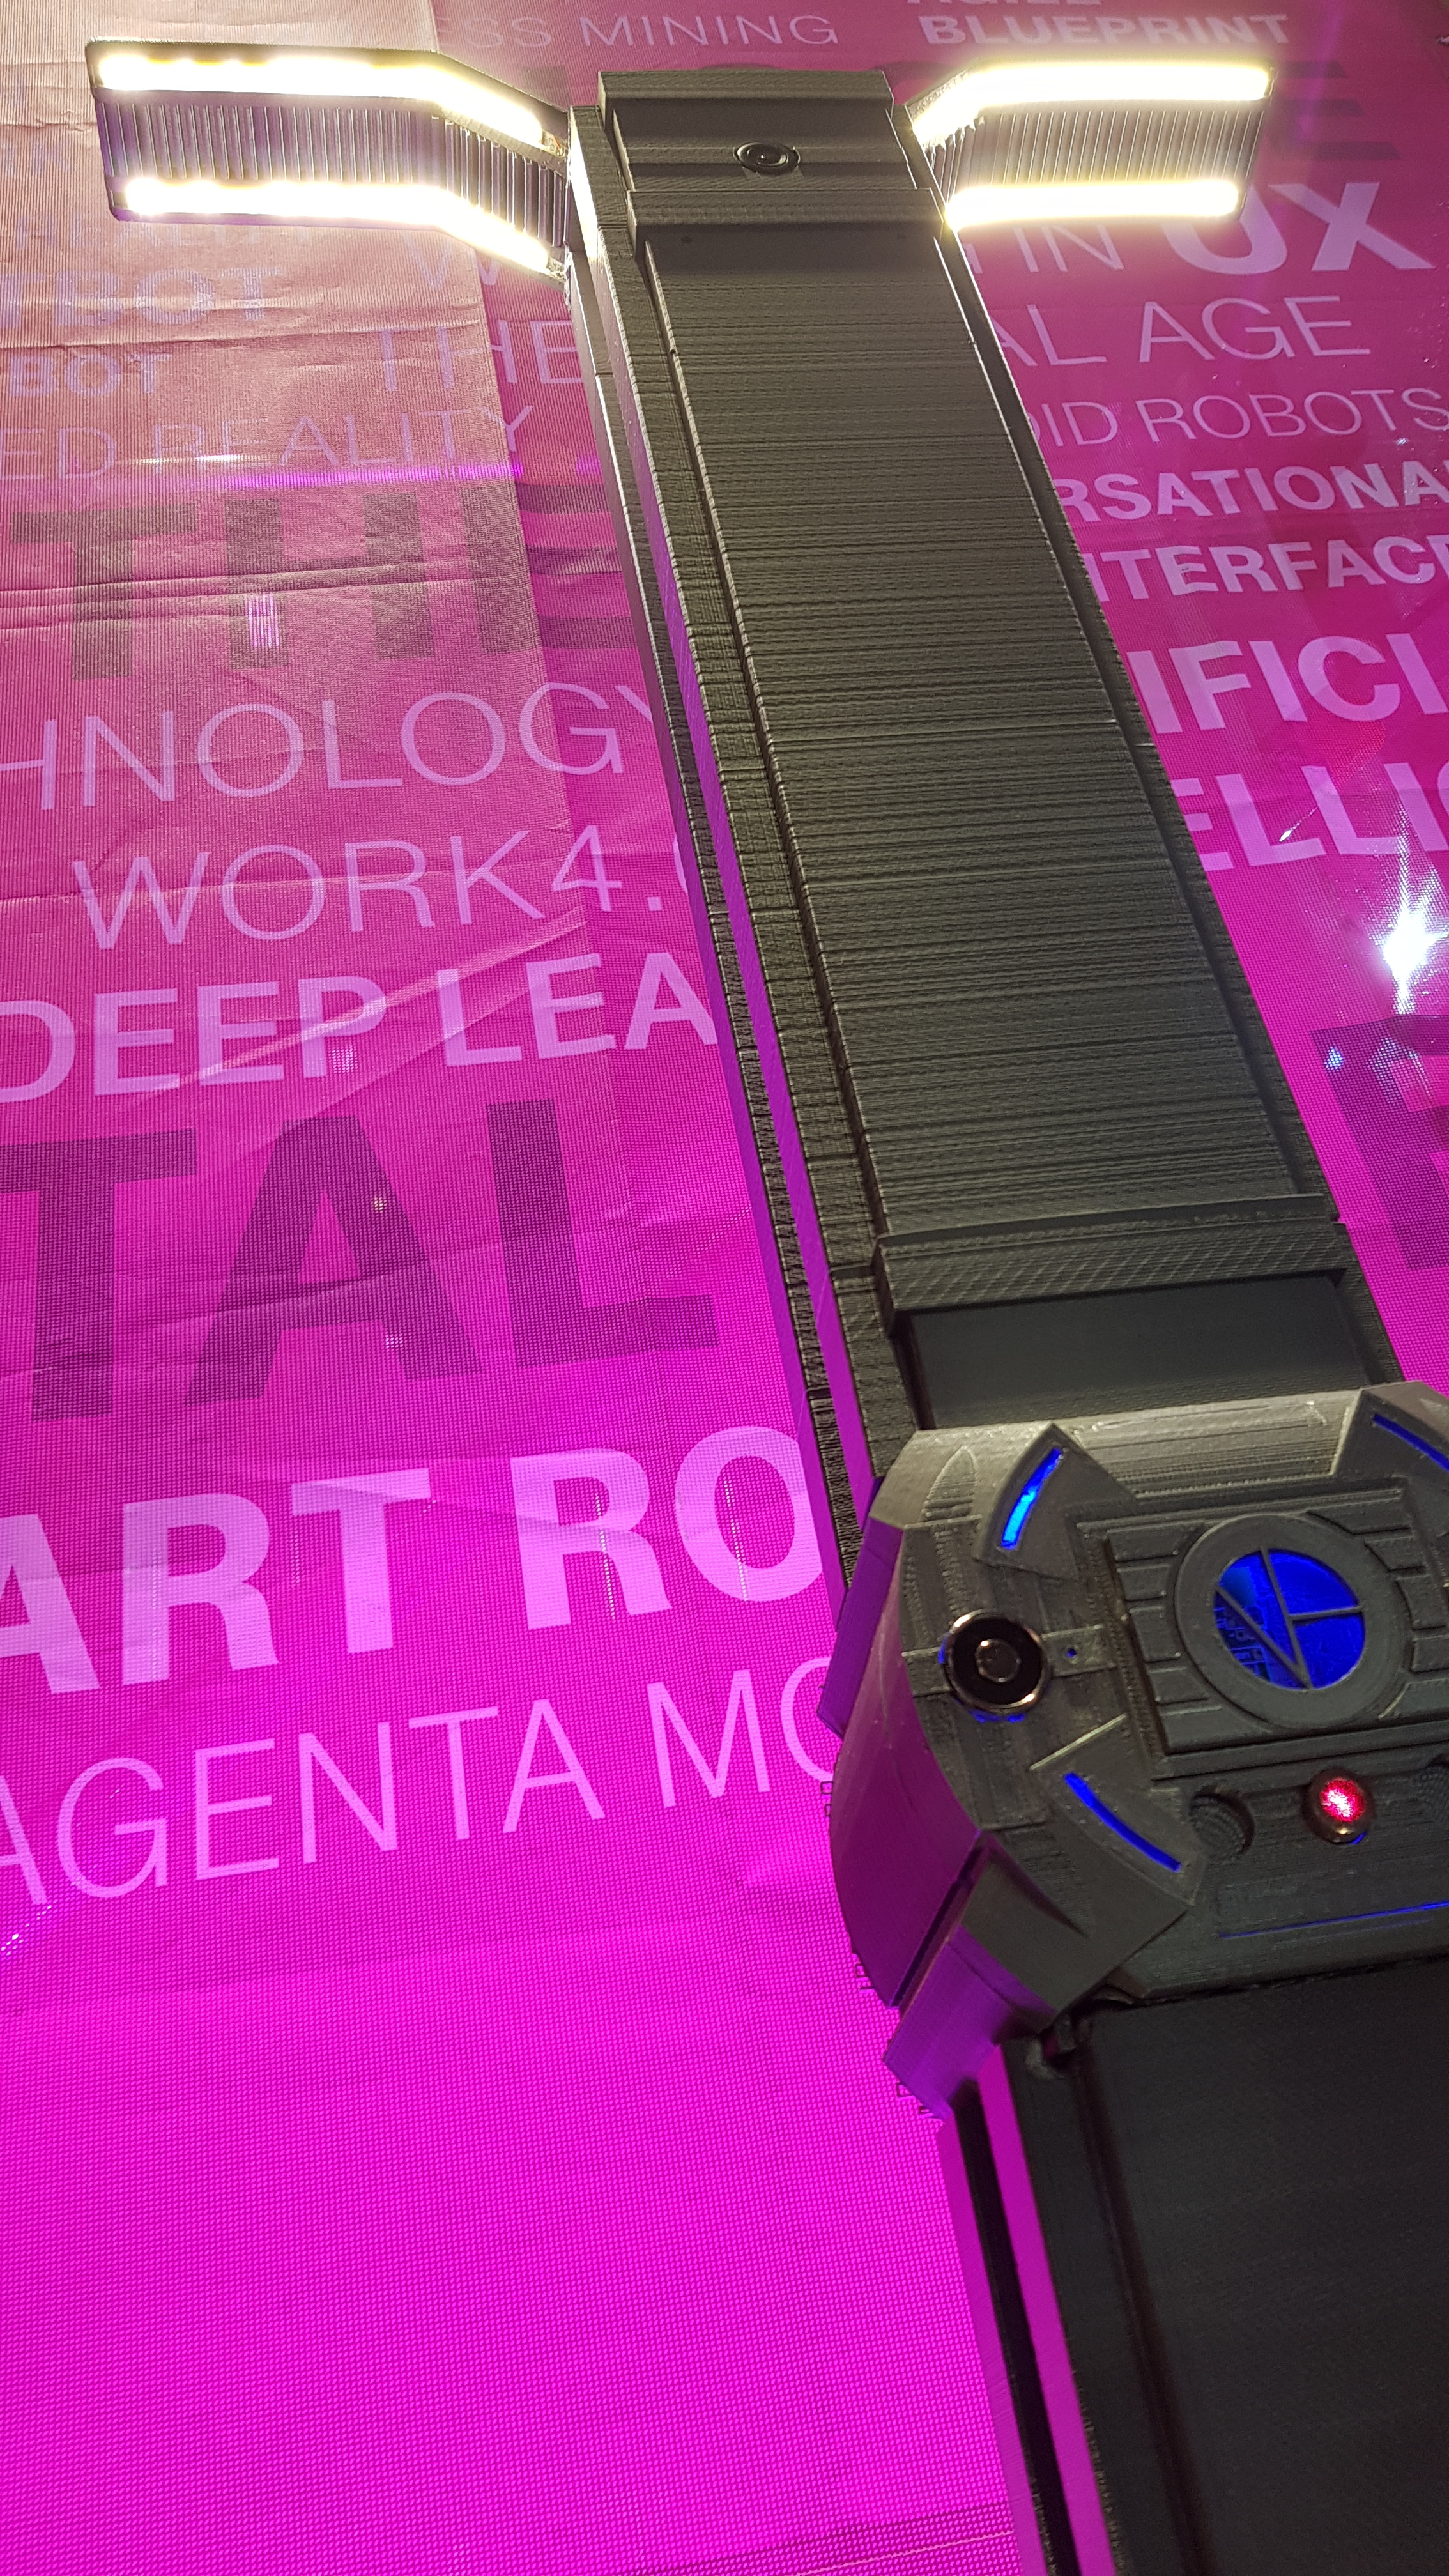 The iEV Robotic Charging System - innovation by iev1gmbh We are here at DIGITAL 2018 on 07.08 November cologne Germany- iEV1 GmbH stand number 1 .https://www.digital18.deSpECIAL thanksto TeleKom Deutscheland